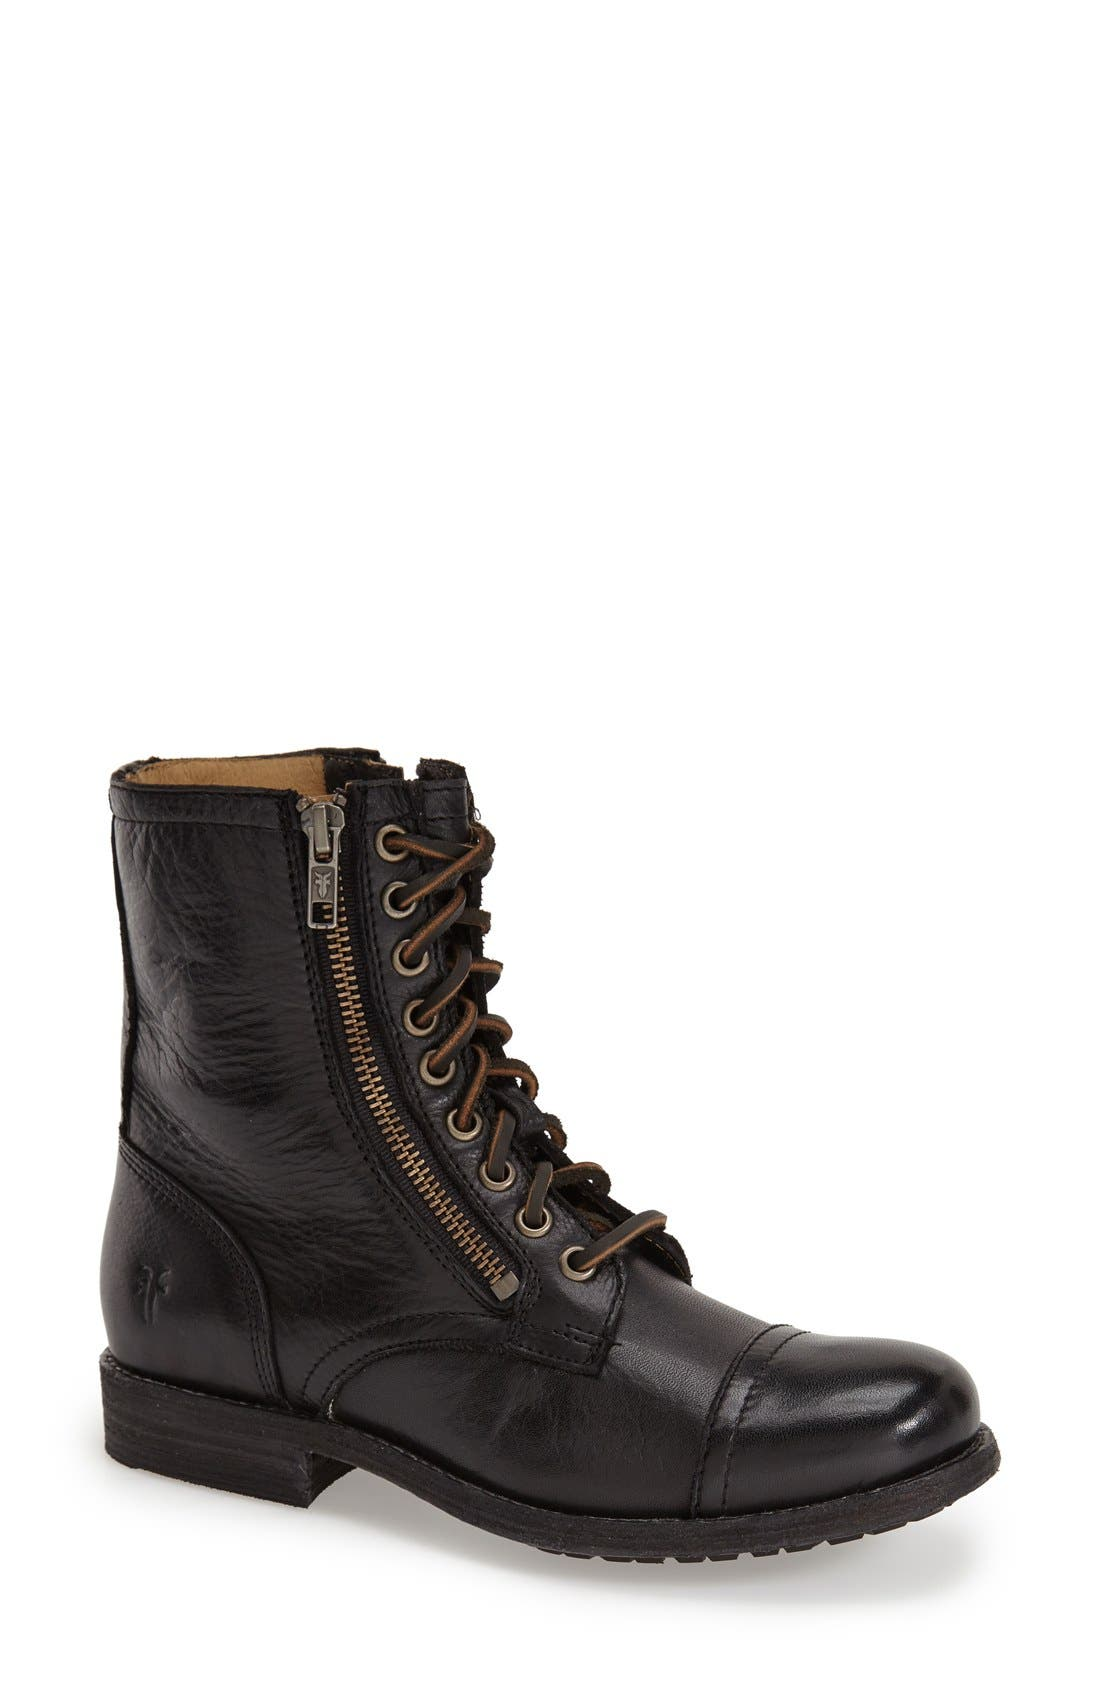 'Tyler' Double Zip Military Boot, Main, color, 001